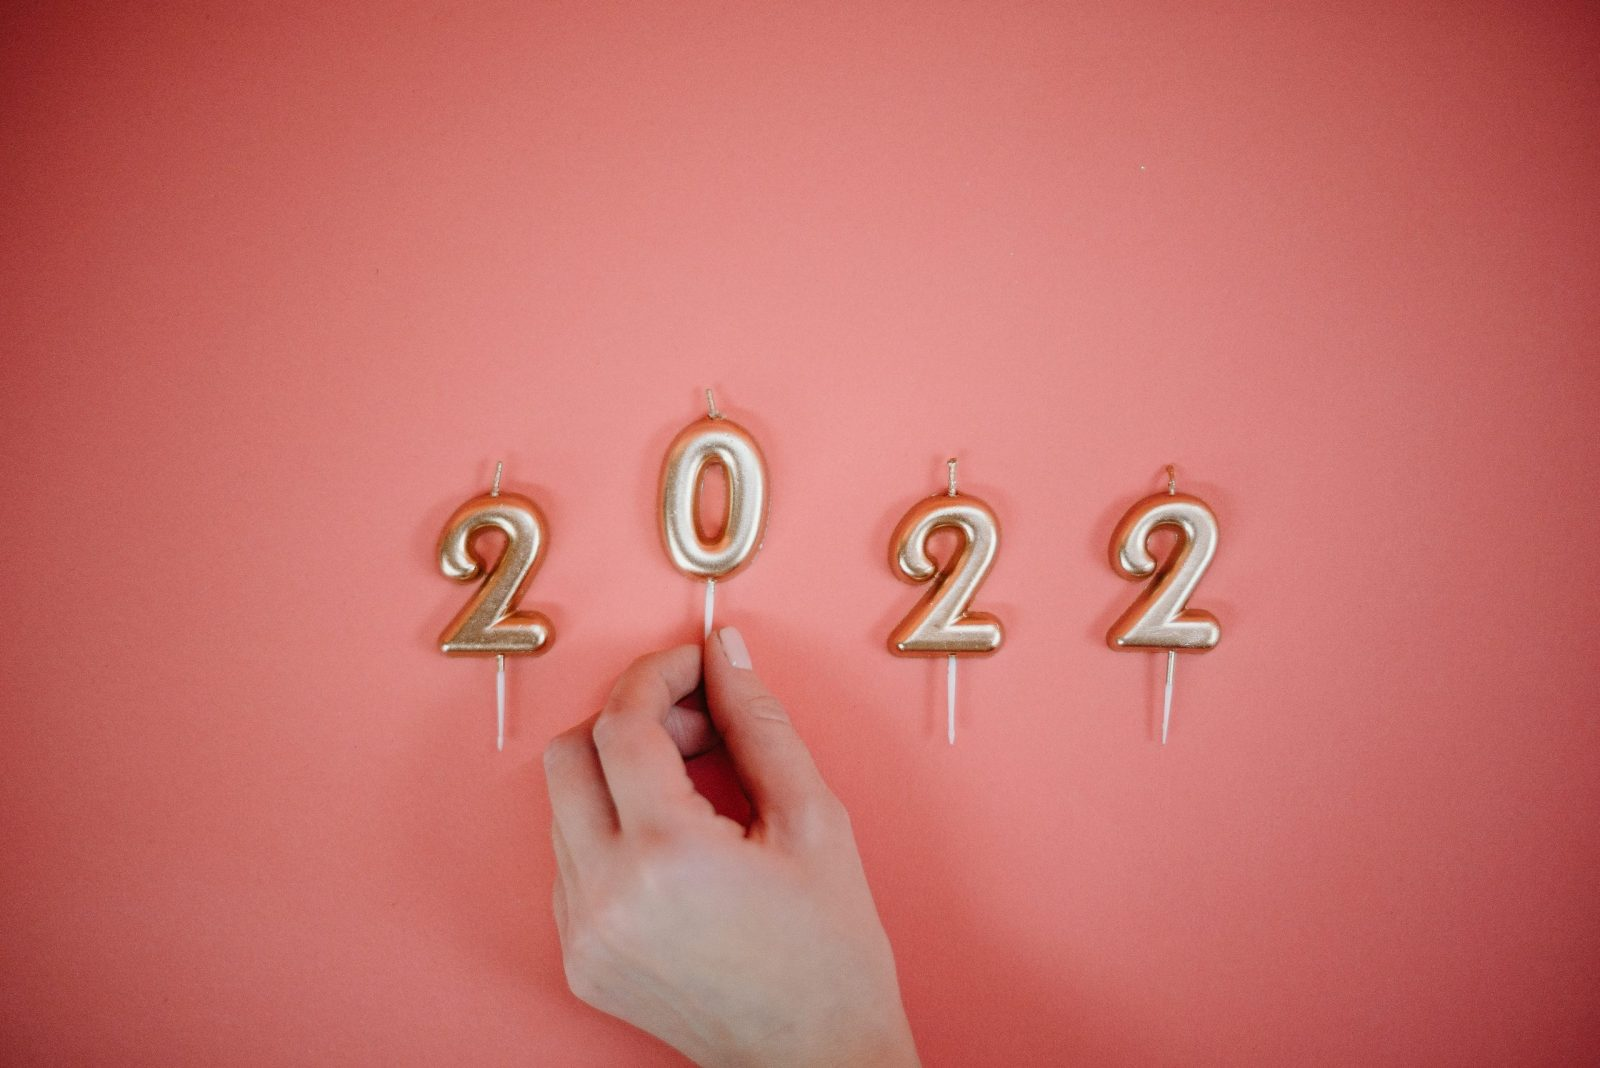 Instagram trends in 2022 you should expect